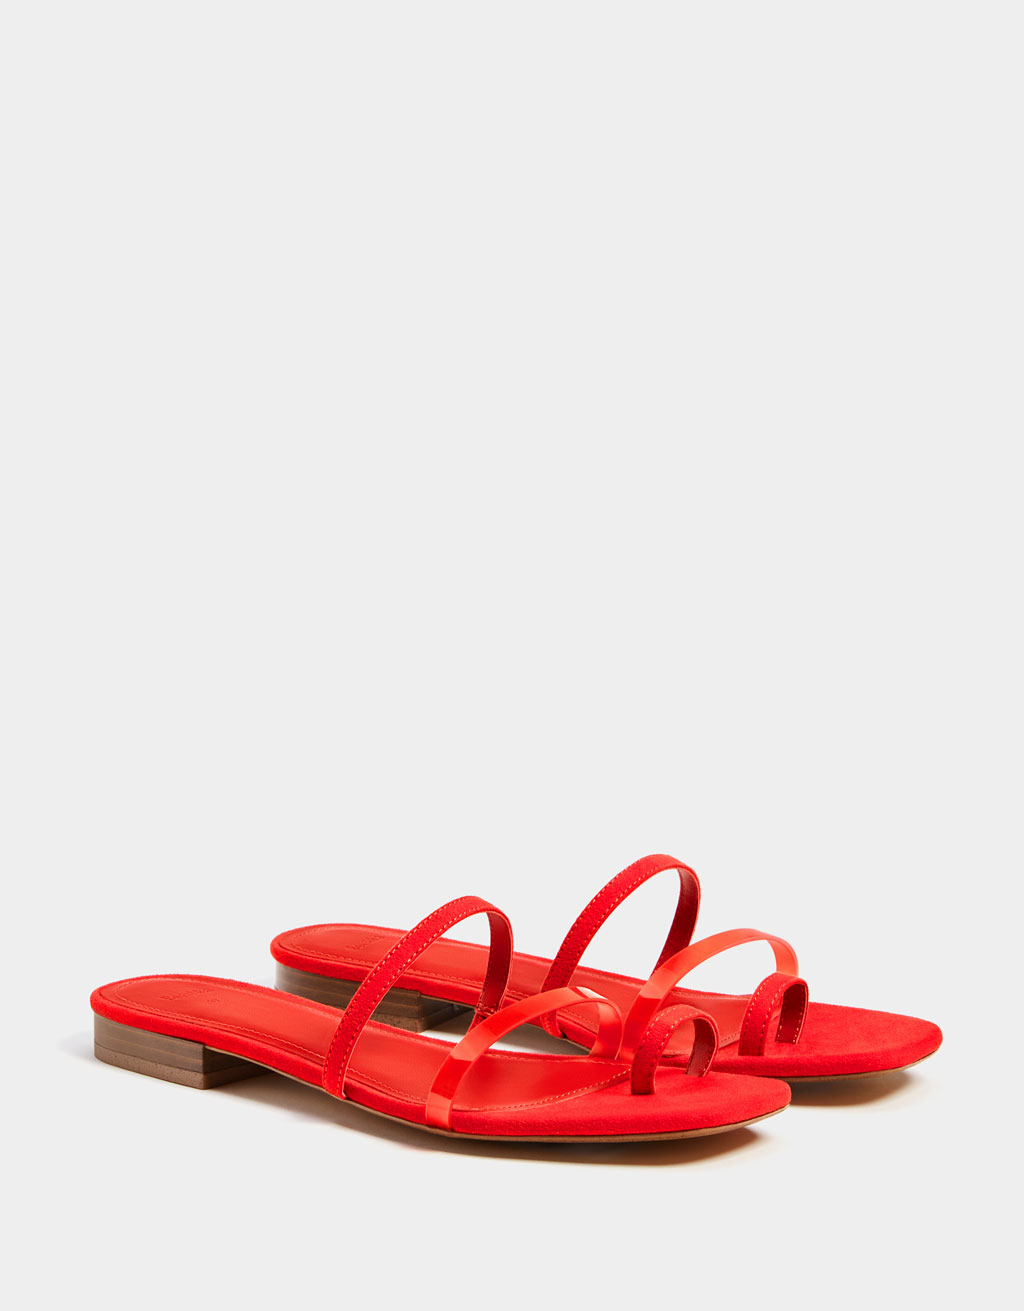 Flat sandals with vinyl straps